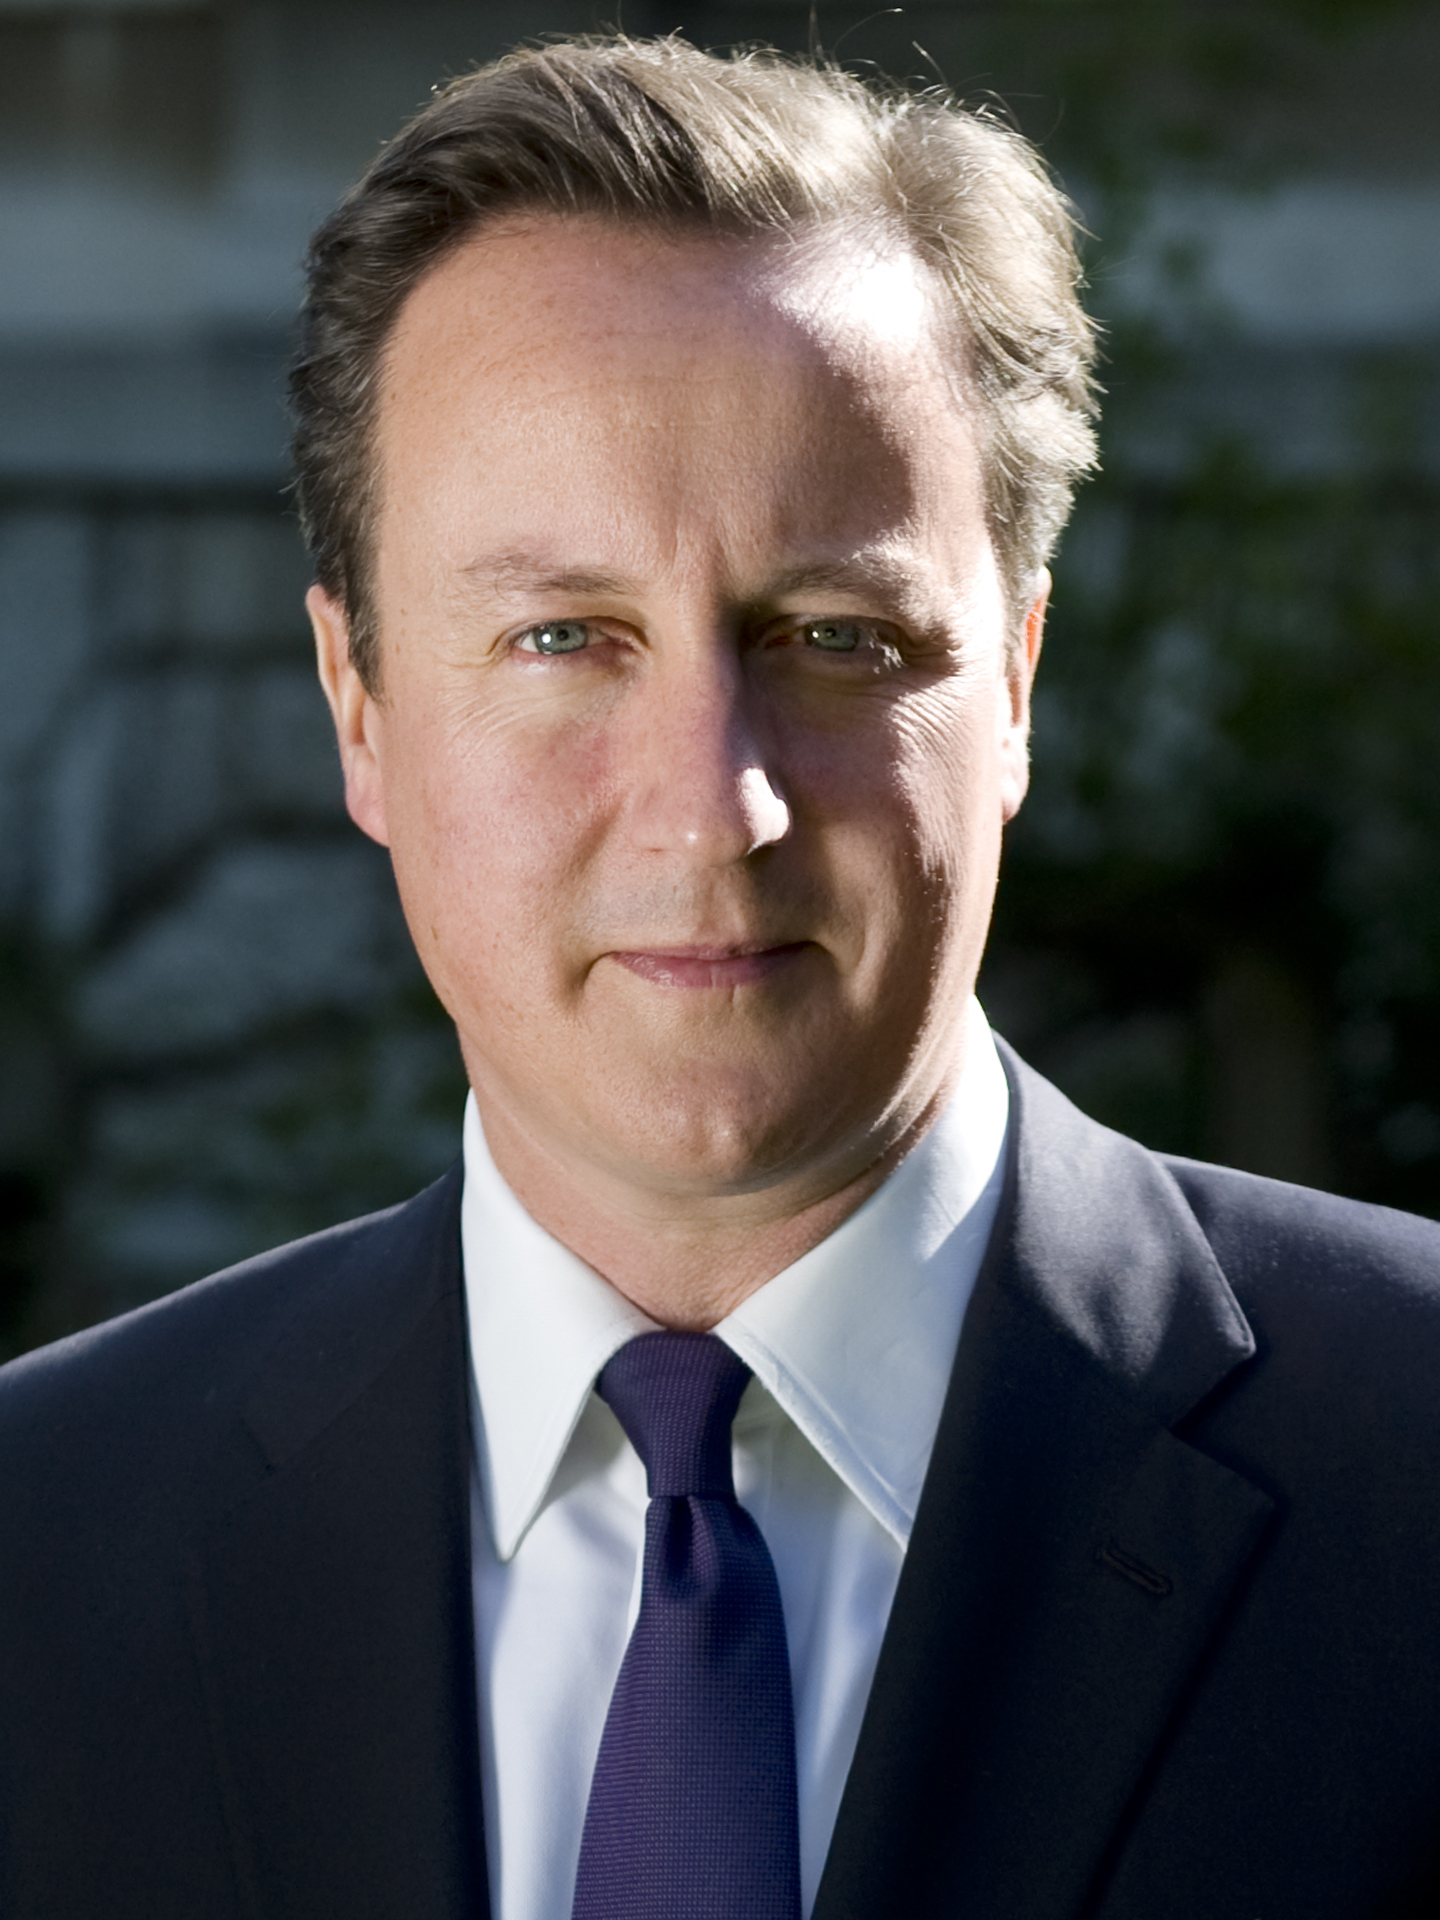 loading image for David Cameron